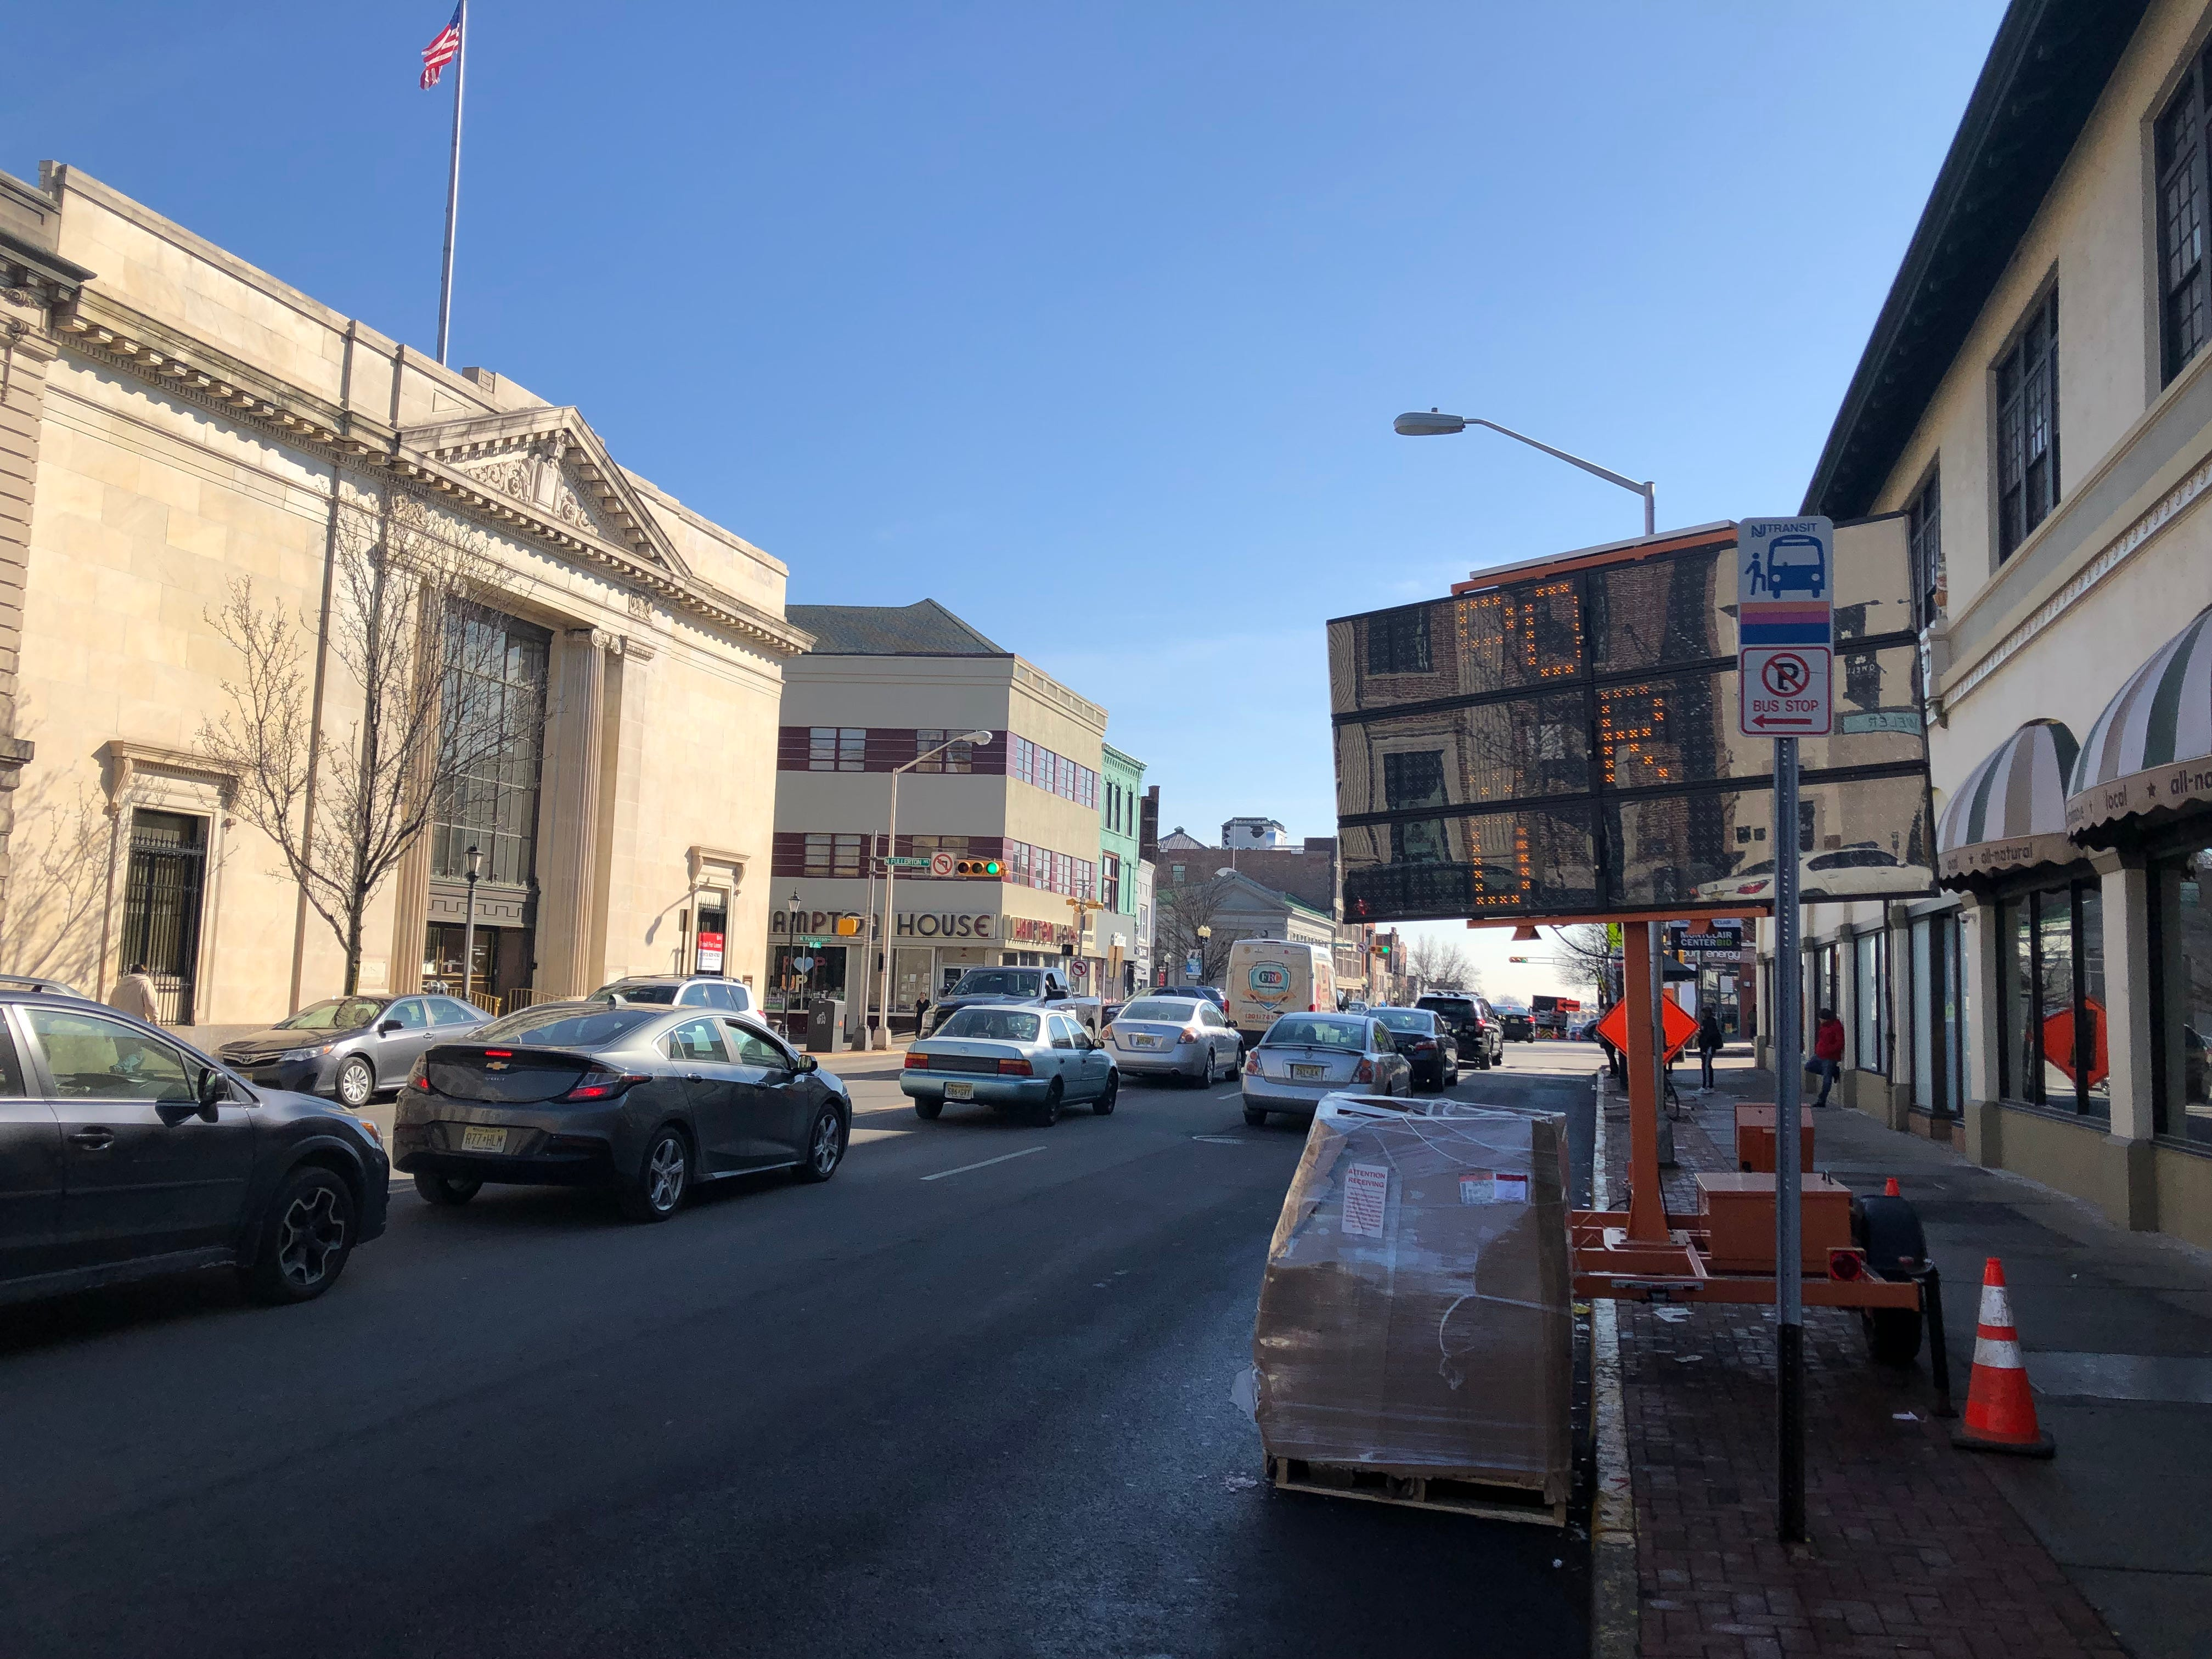 The 1923 Bank of Montclair building, left,  currently empty, is being redesigned for retail tenants. The 1924 Hinck building, on right, houses the Claridge Theatre, one of three silent movie theaters built in Montclair during the 1920s . February 2019.